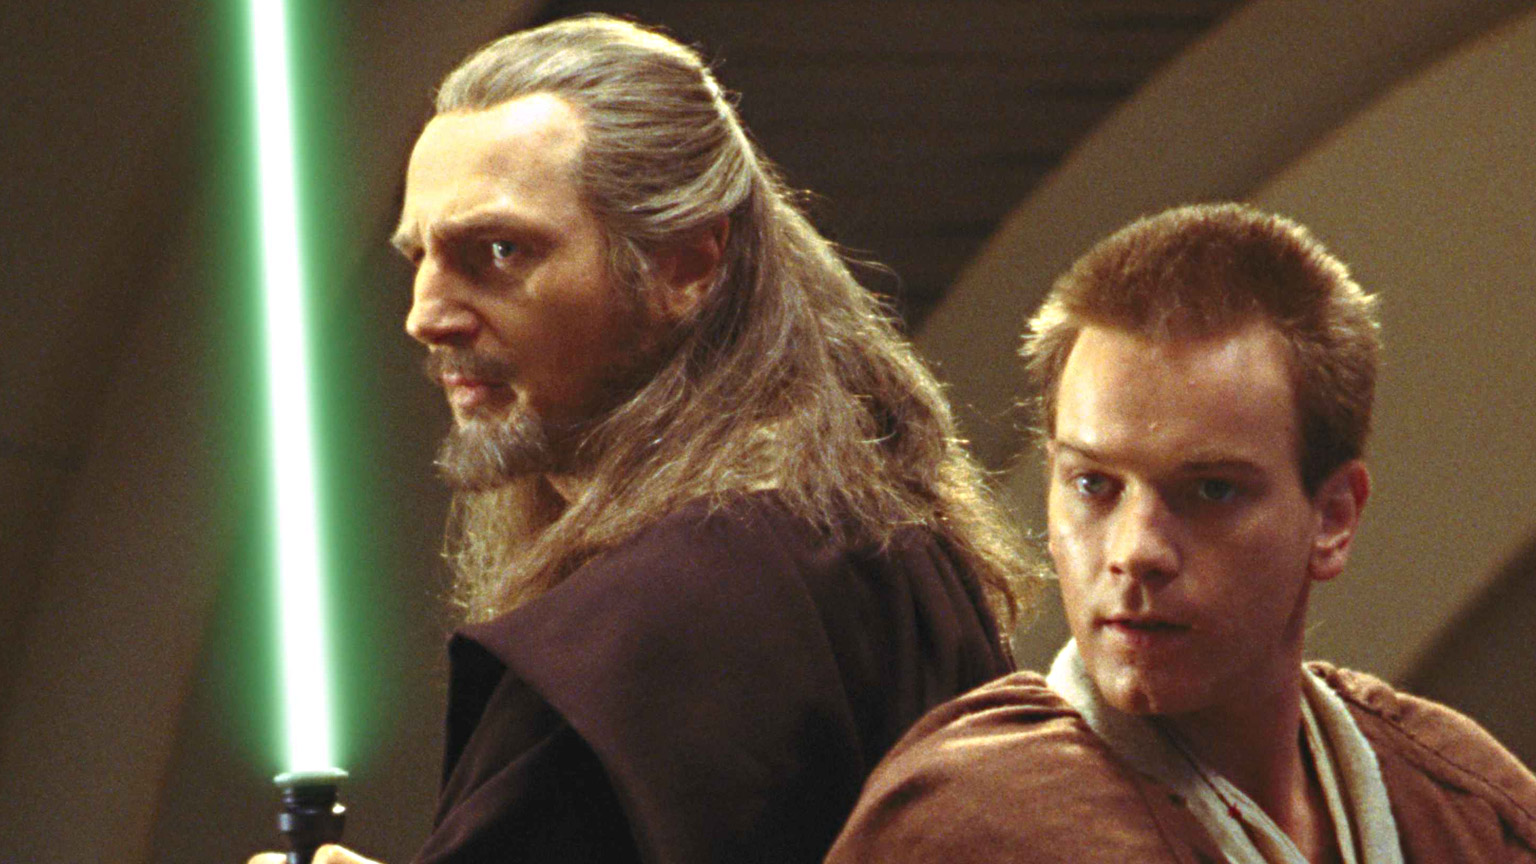 Qui-Gon Jin and Obi-Wan Kenobi standing back to back with lightsabers drawn.